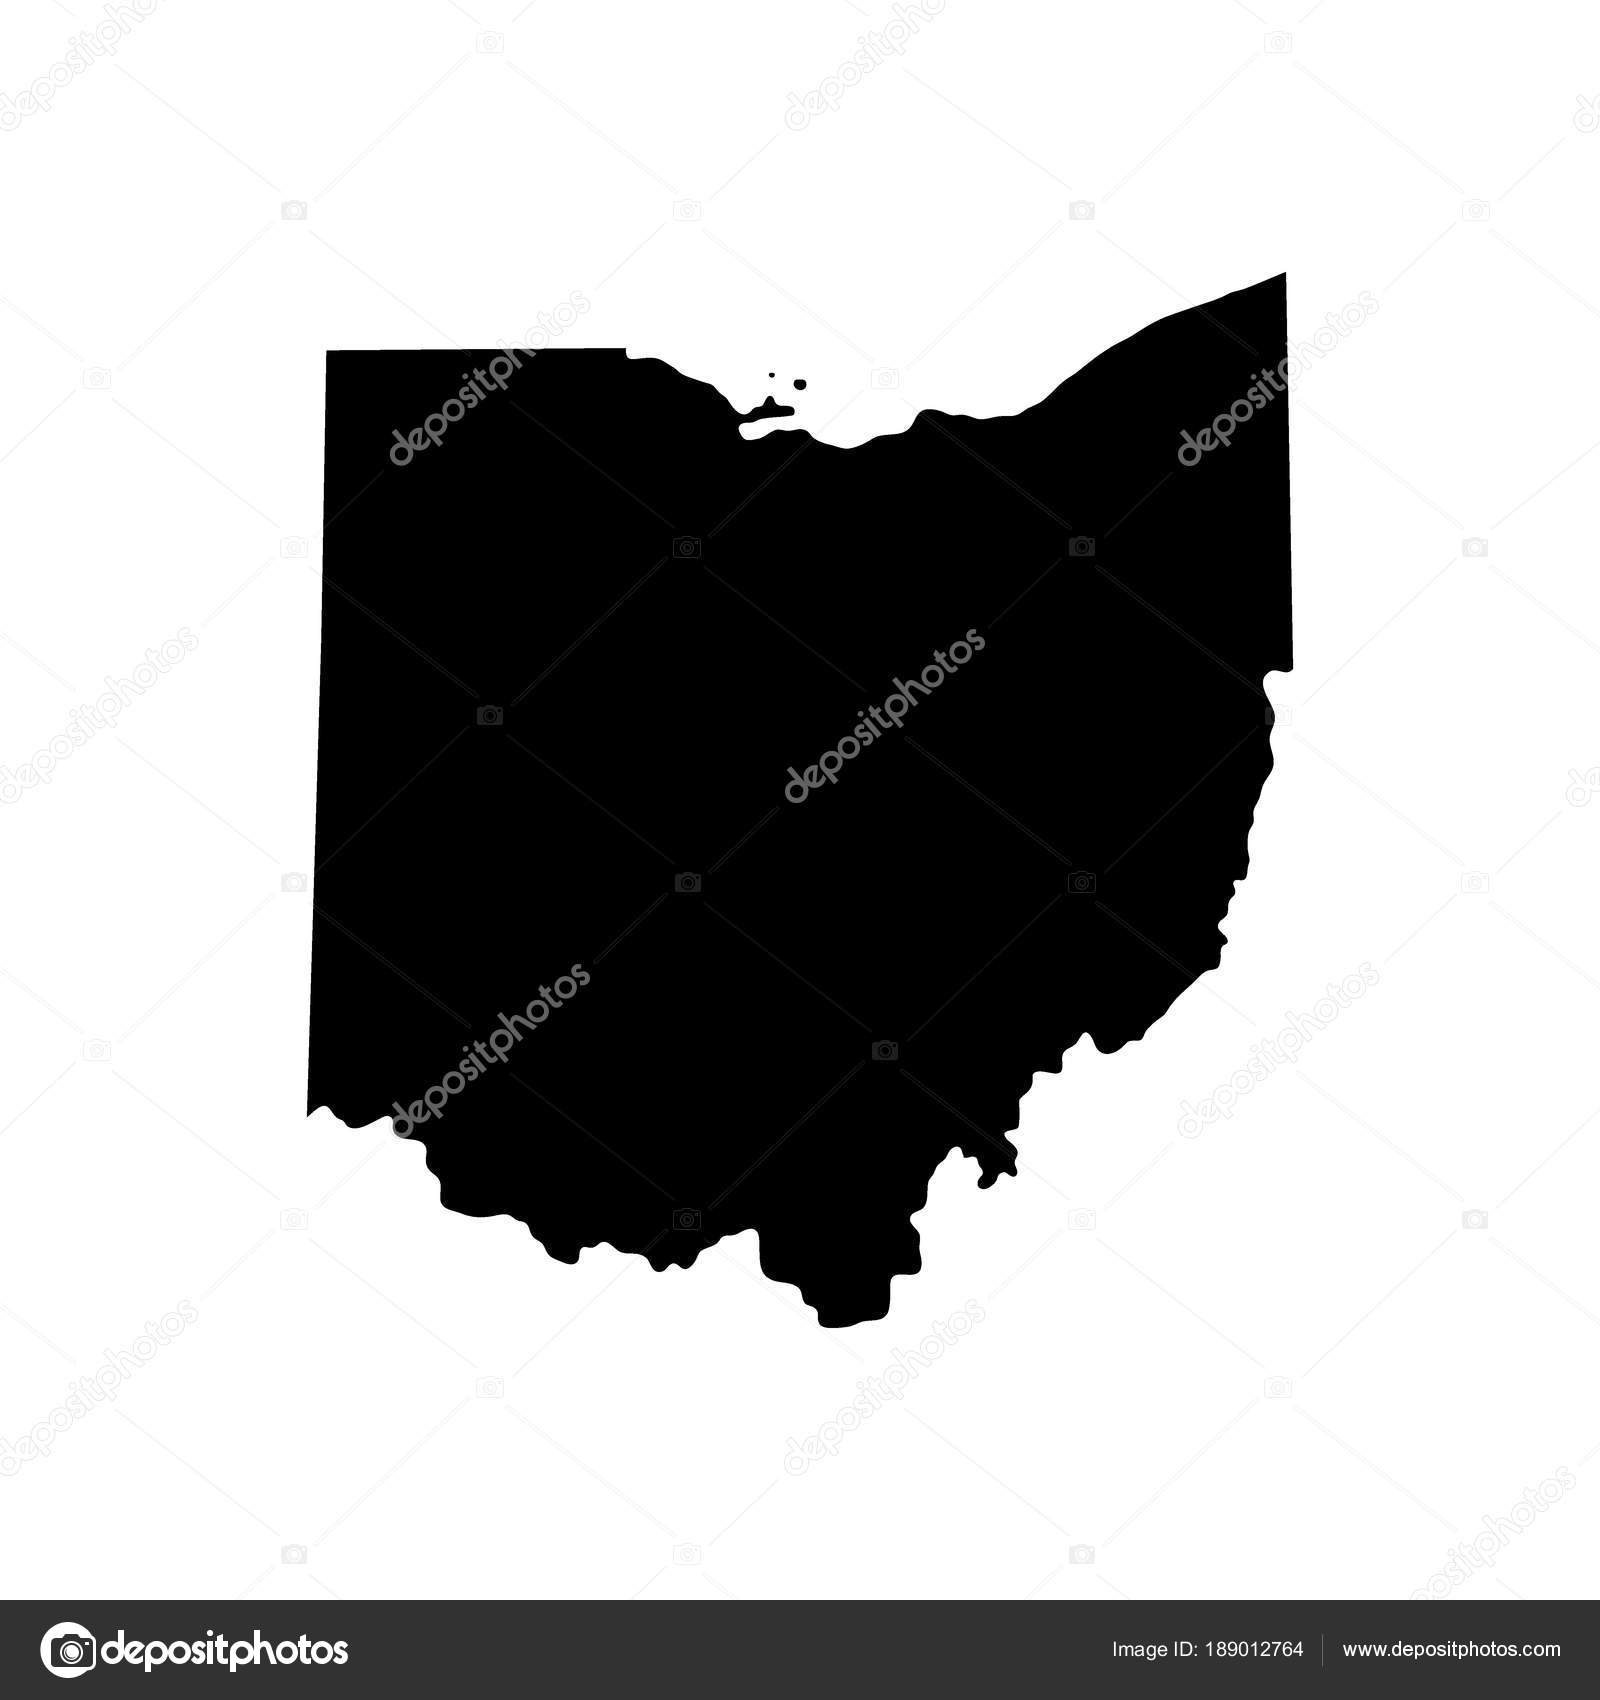 Ohio On State Map.Map Of The U S State Of Ohio Stock Vector C Pavlentii 189012764